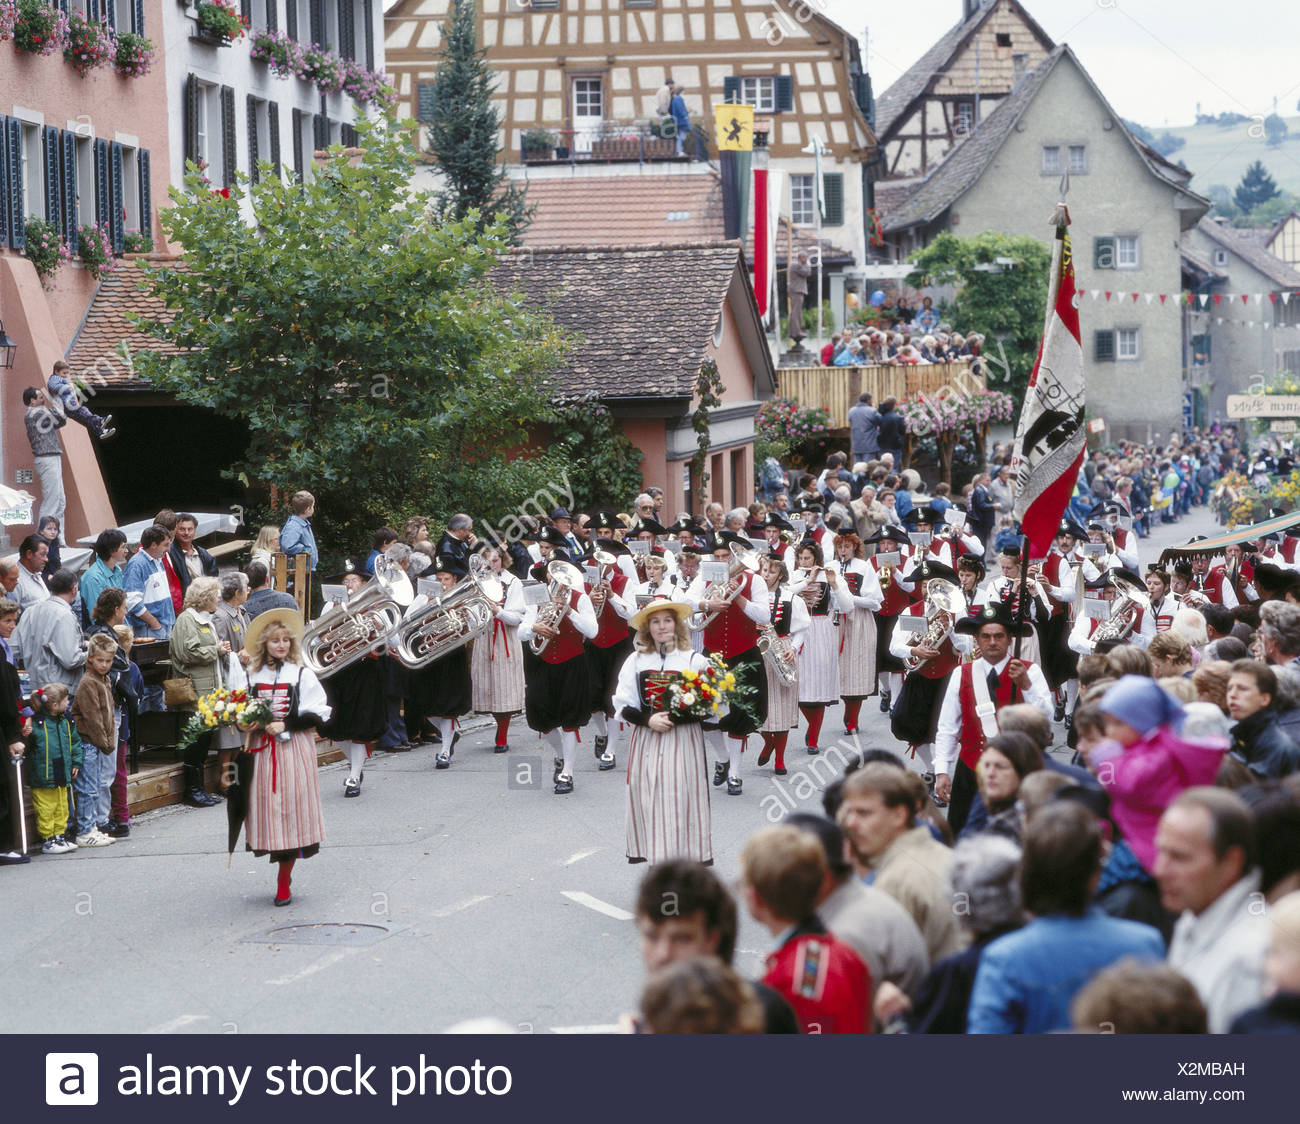 brass band music tradition blower tradition folklore Hallau canton Schaffhausen bolt houses Switzerland Eu - Stock Image